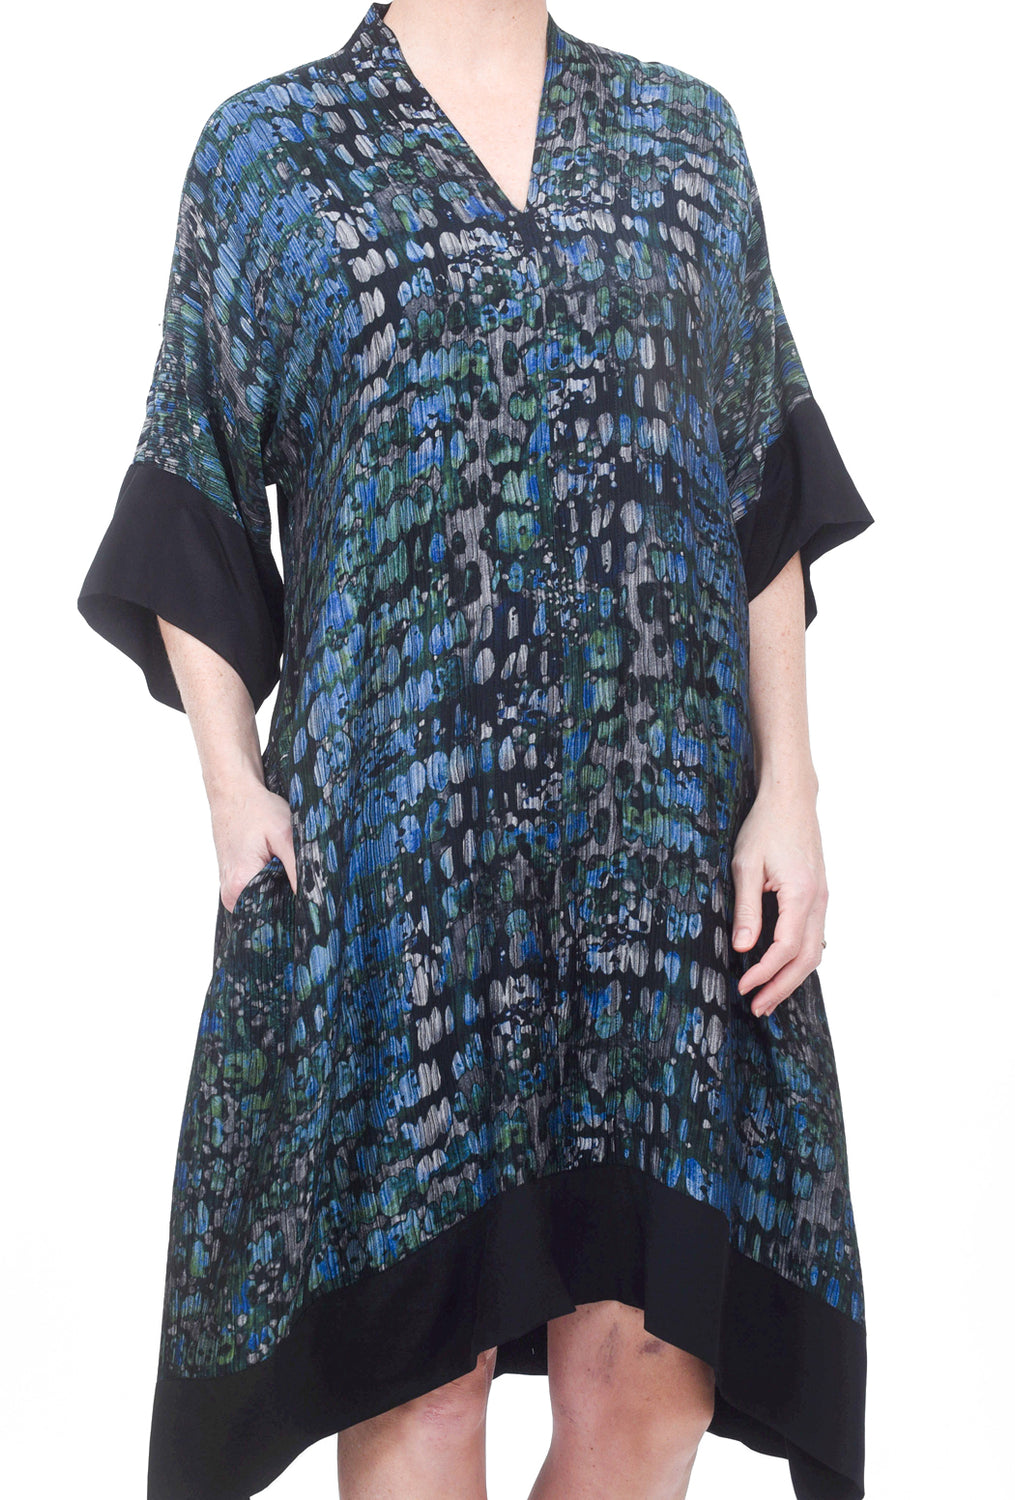 Dressori Plunge Moon Dress, Teal